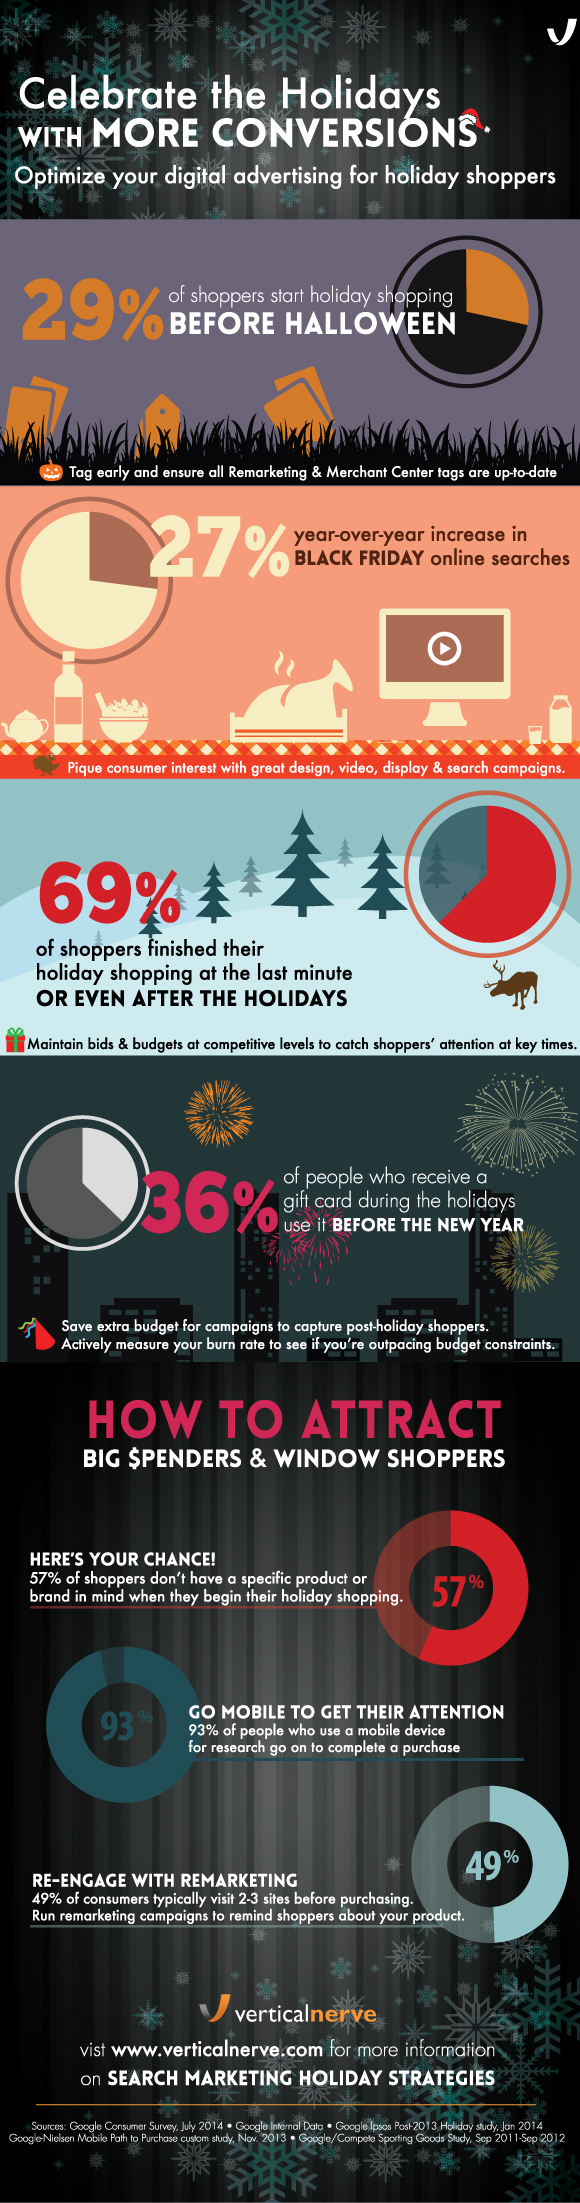 Holiday Digital Marketing Infographic